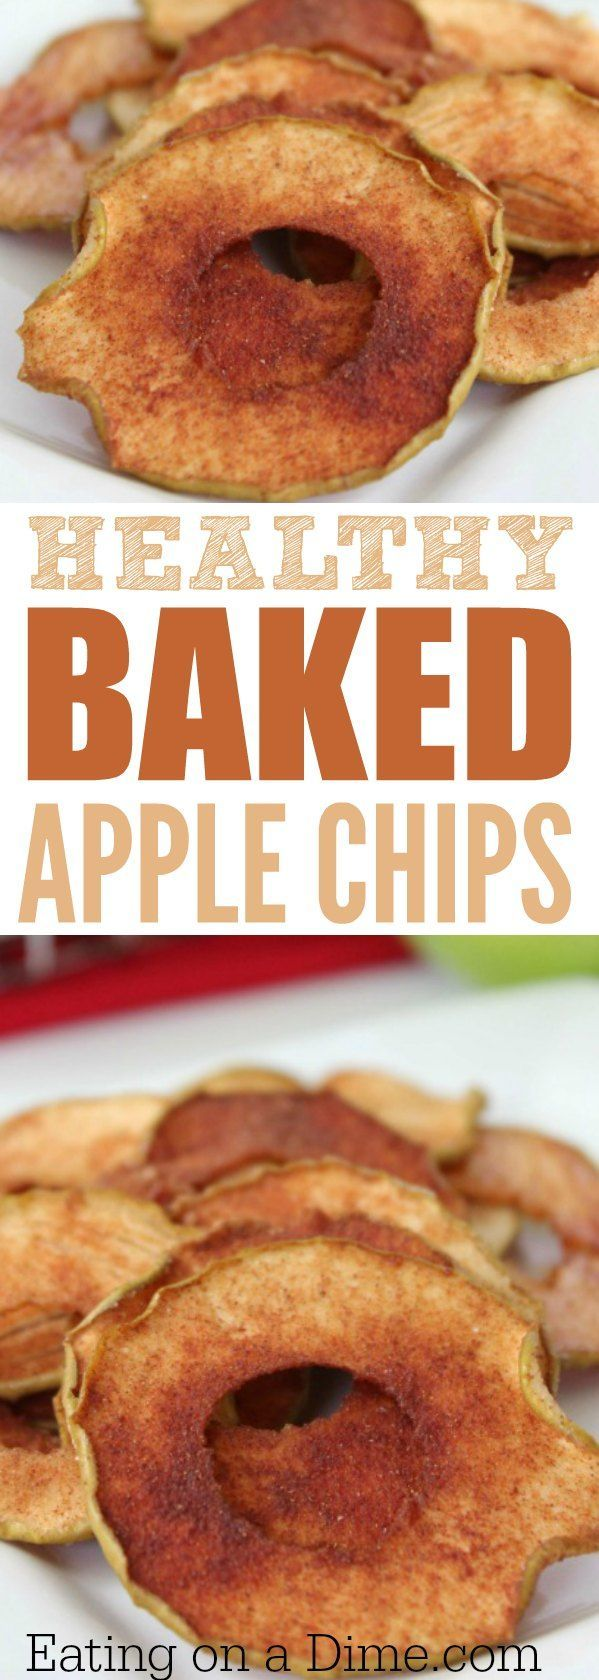 How to make Apple chips in the oven. Try this easy baked apple chips recipe. How to bake apple slices easily. The perfect after school snack.